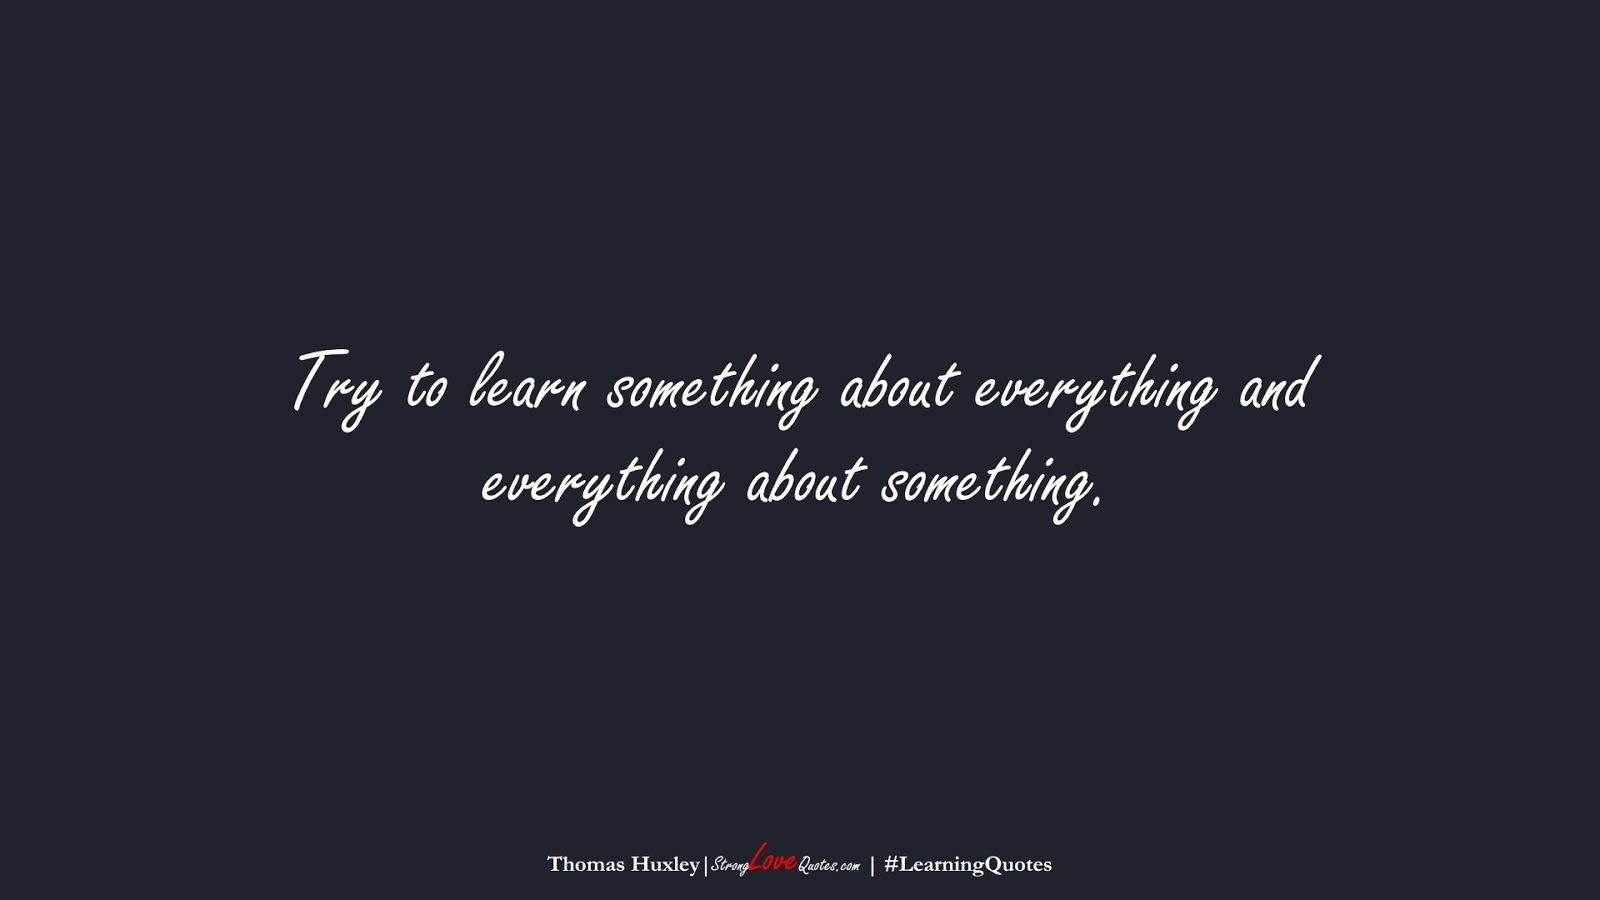 Try to learn something about everything and everything about something. (Thomas Huxley);  #LearningQuotes